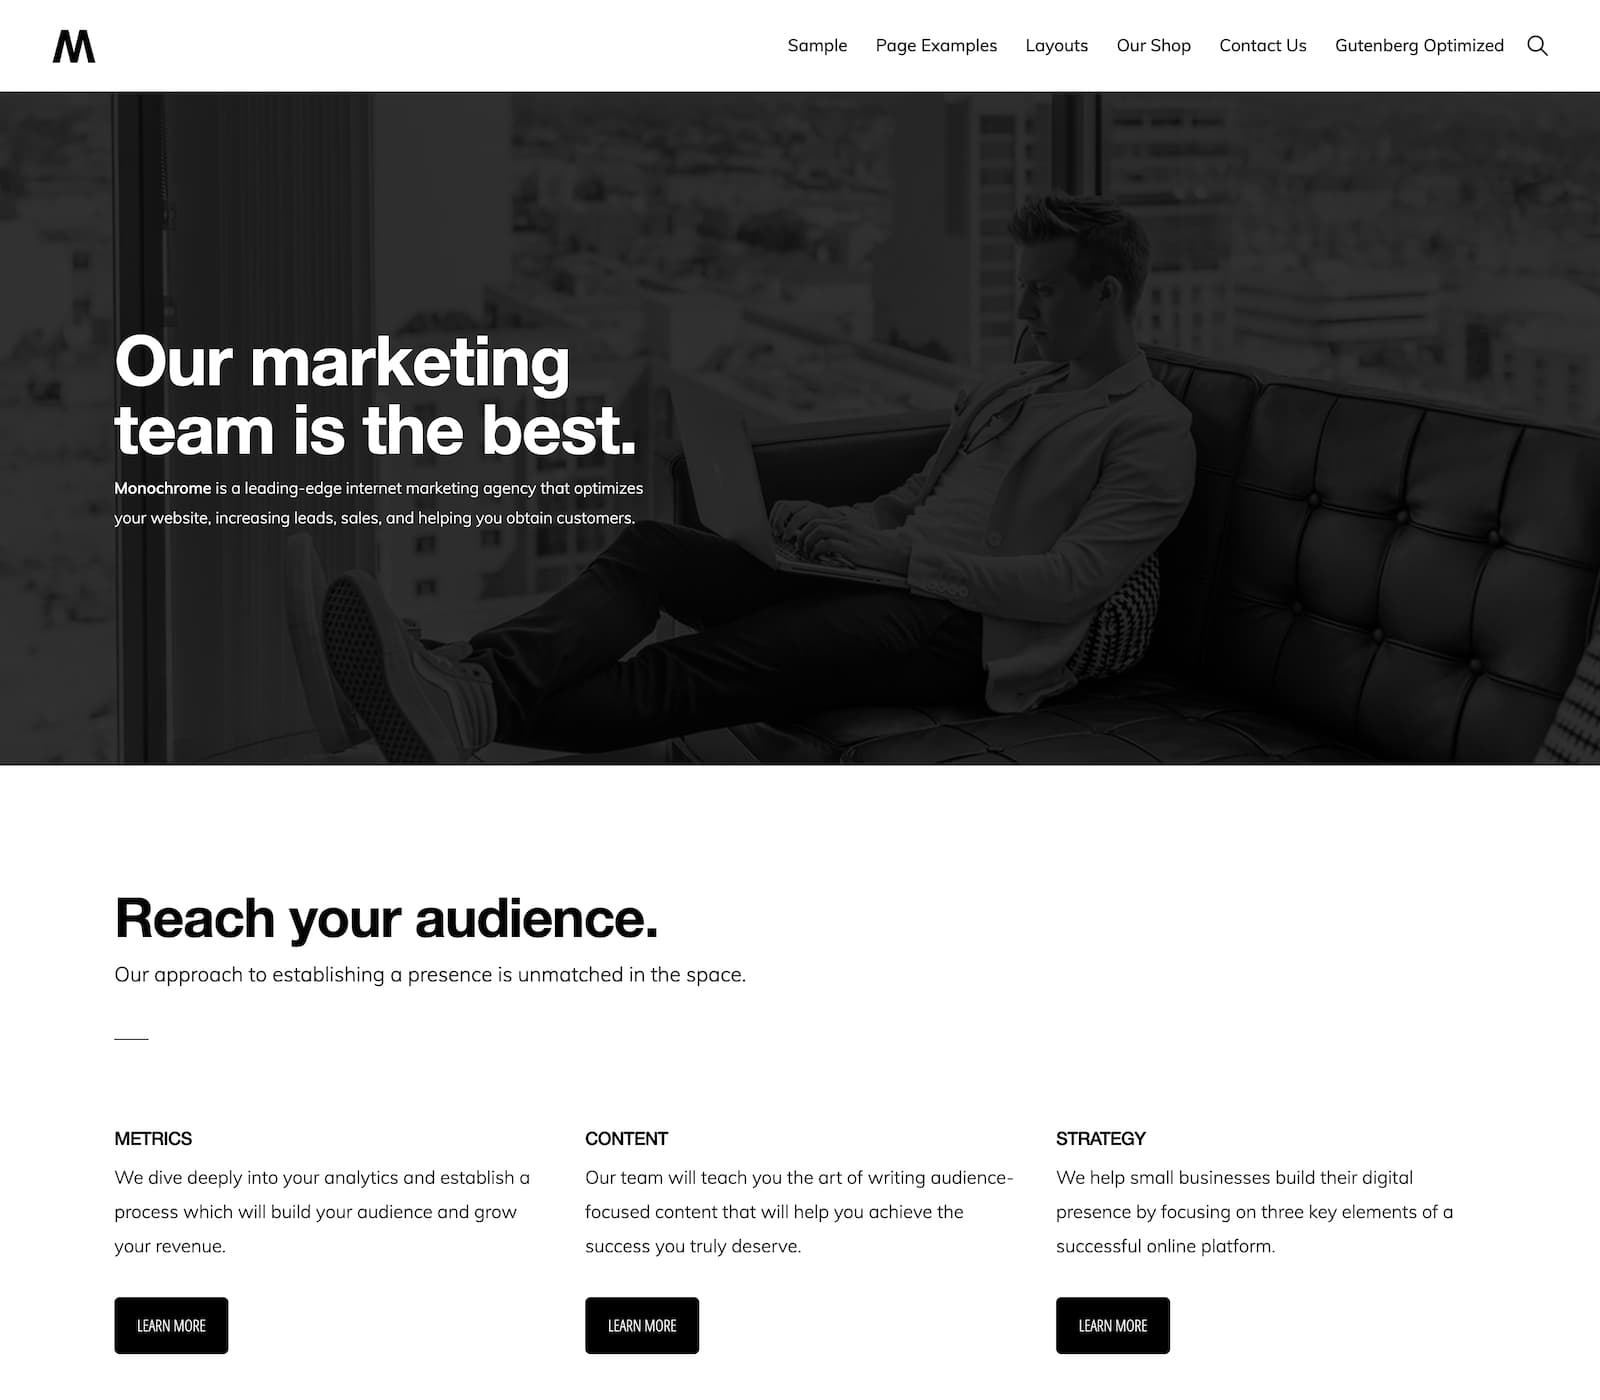 """Need a theme that's substantial but simple? Monochrome Pro is sleek, has just the right balance of white space, and is a minimal """"clean"""" design. This theme is strong visually while being easy to use. It's powered by genesis and has the robust WordPress features you've grown to love."""